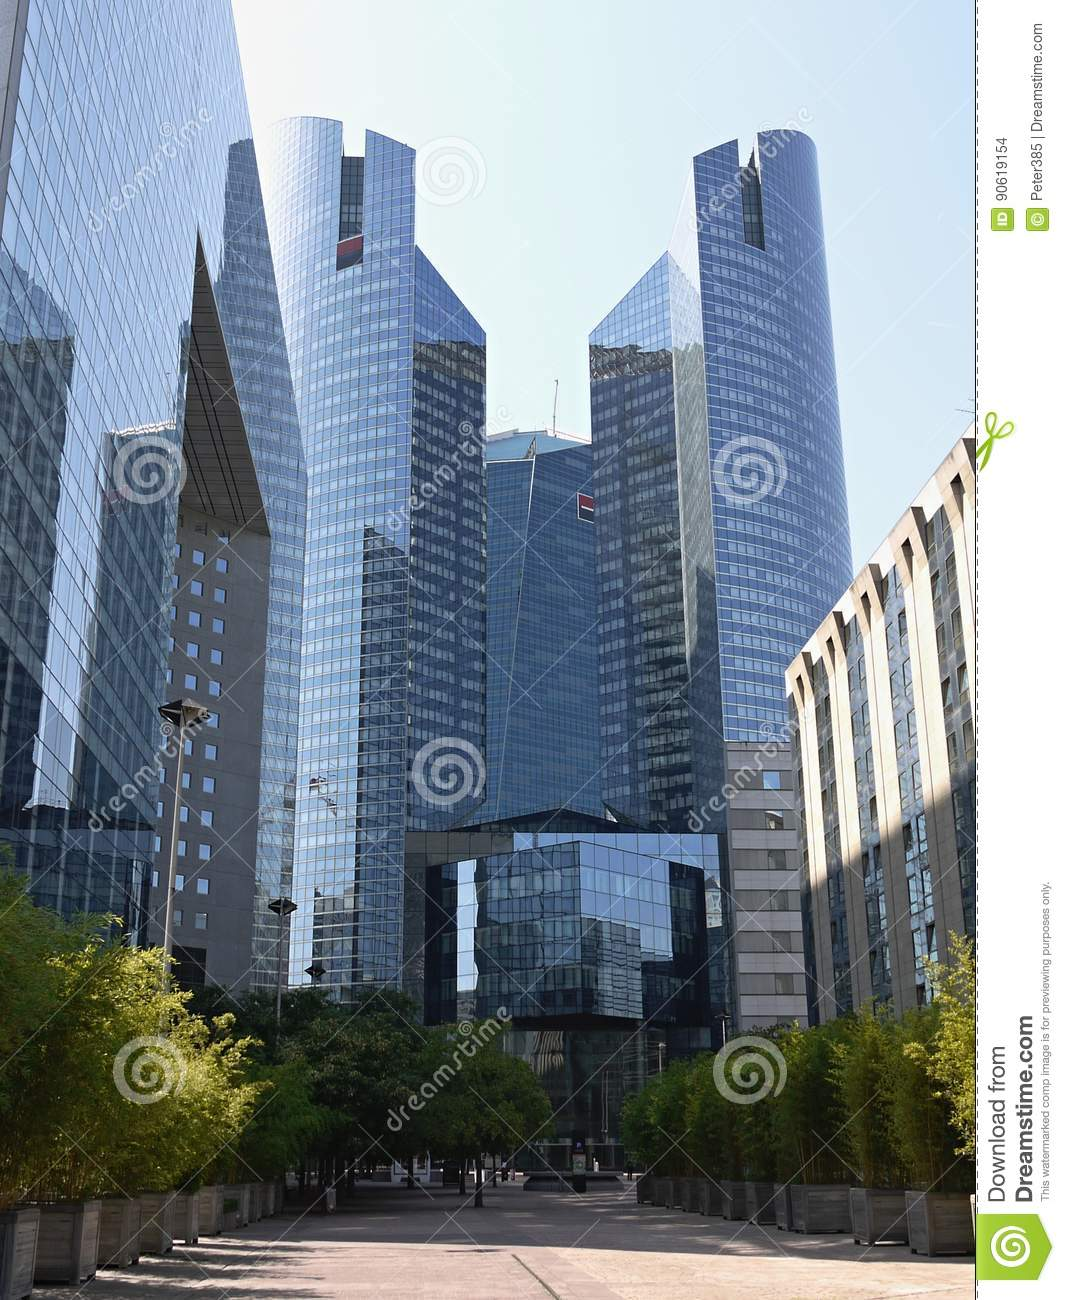 Download Montparnasse editorial stock image. Image of area, editorial - 90619154